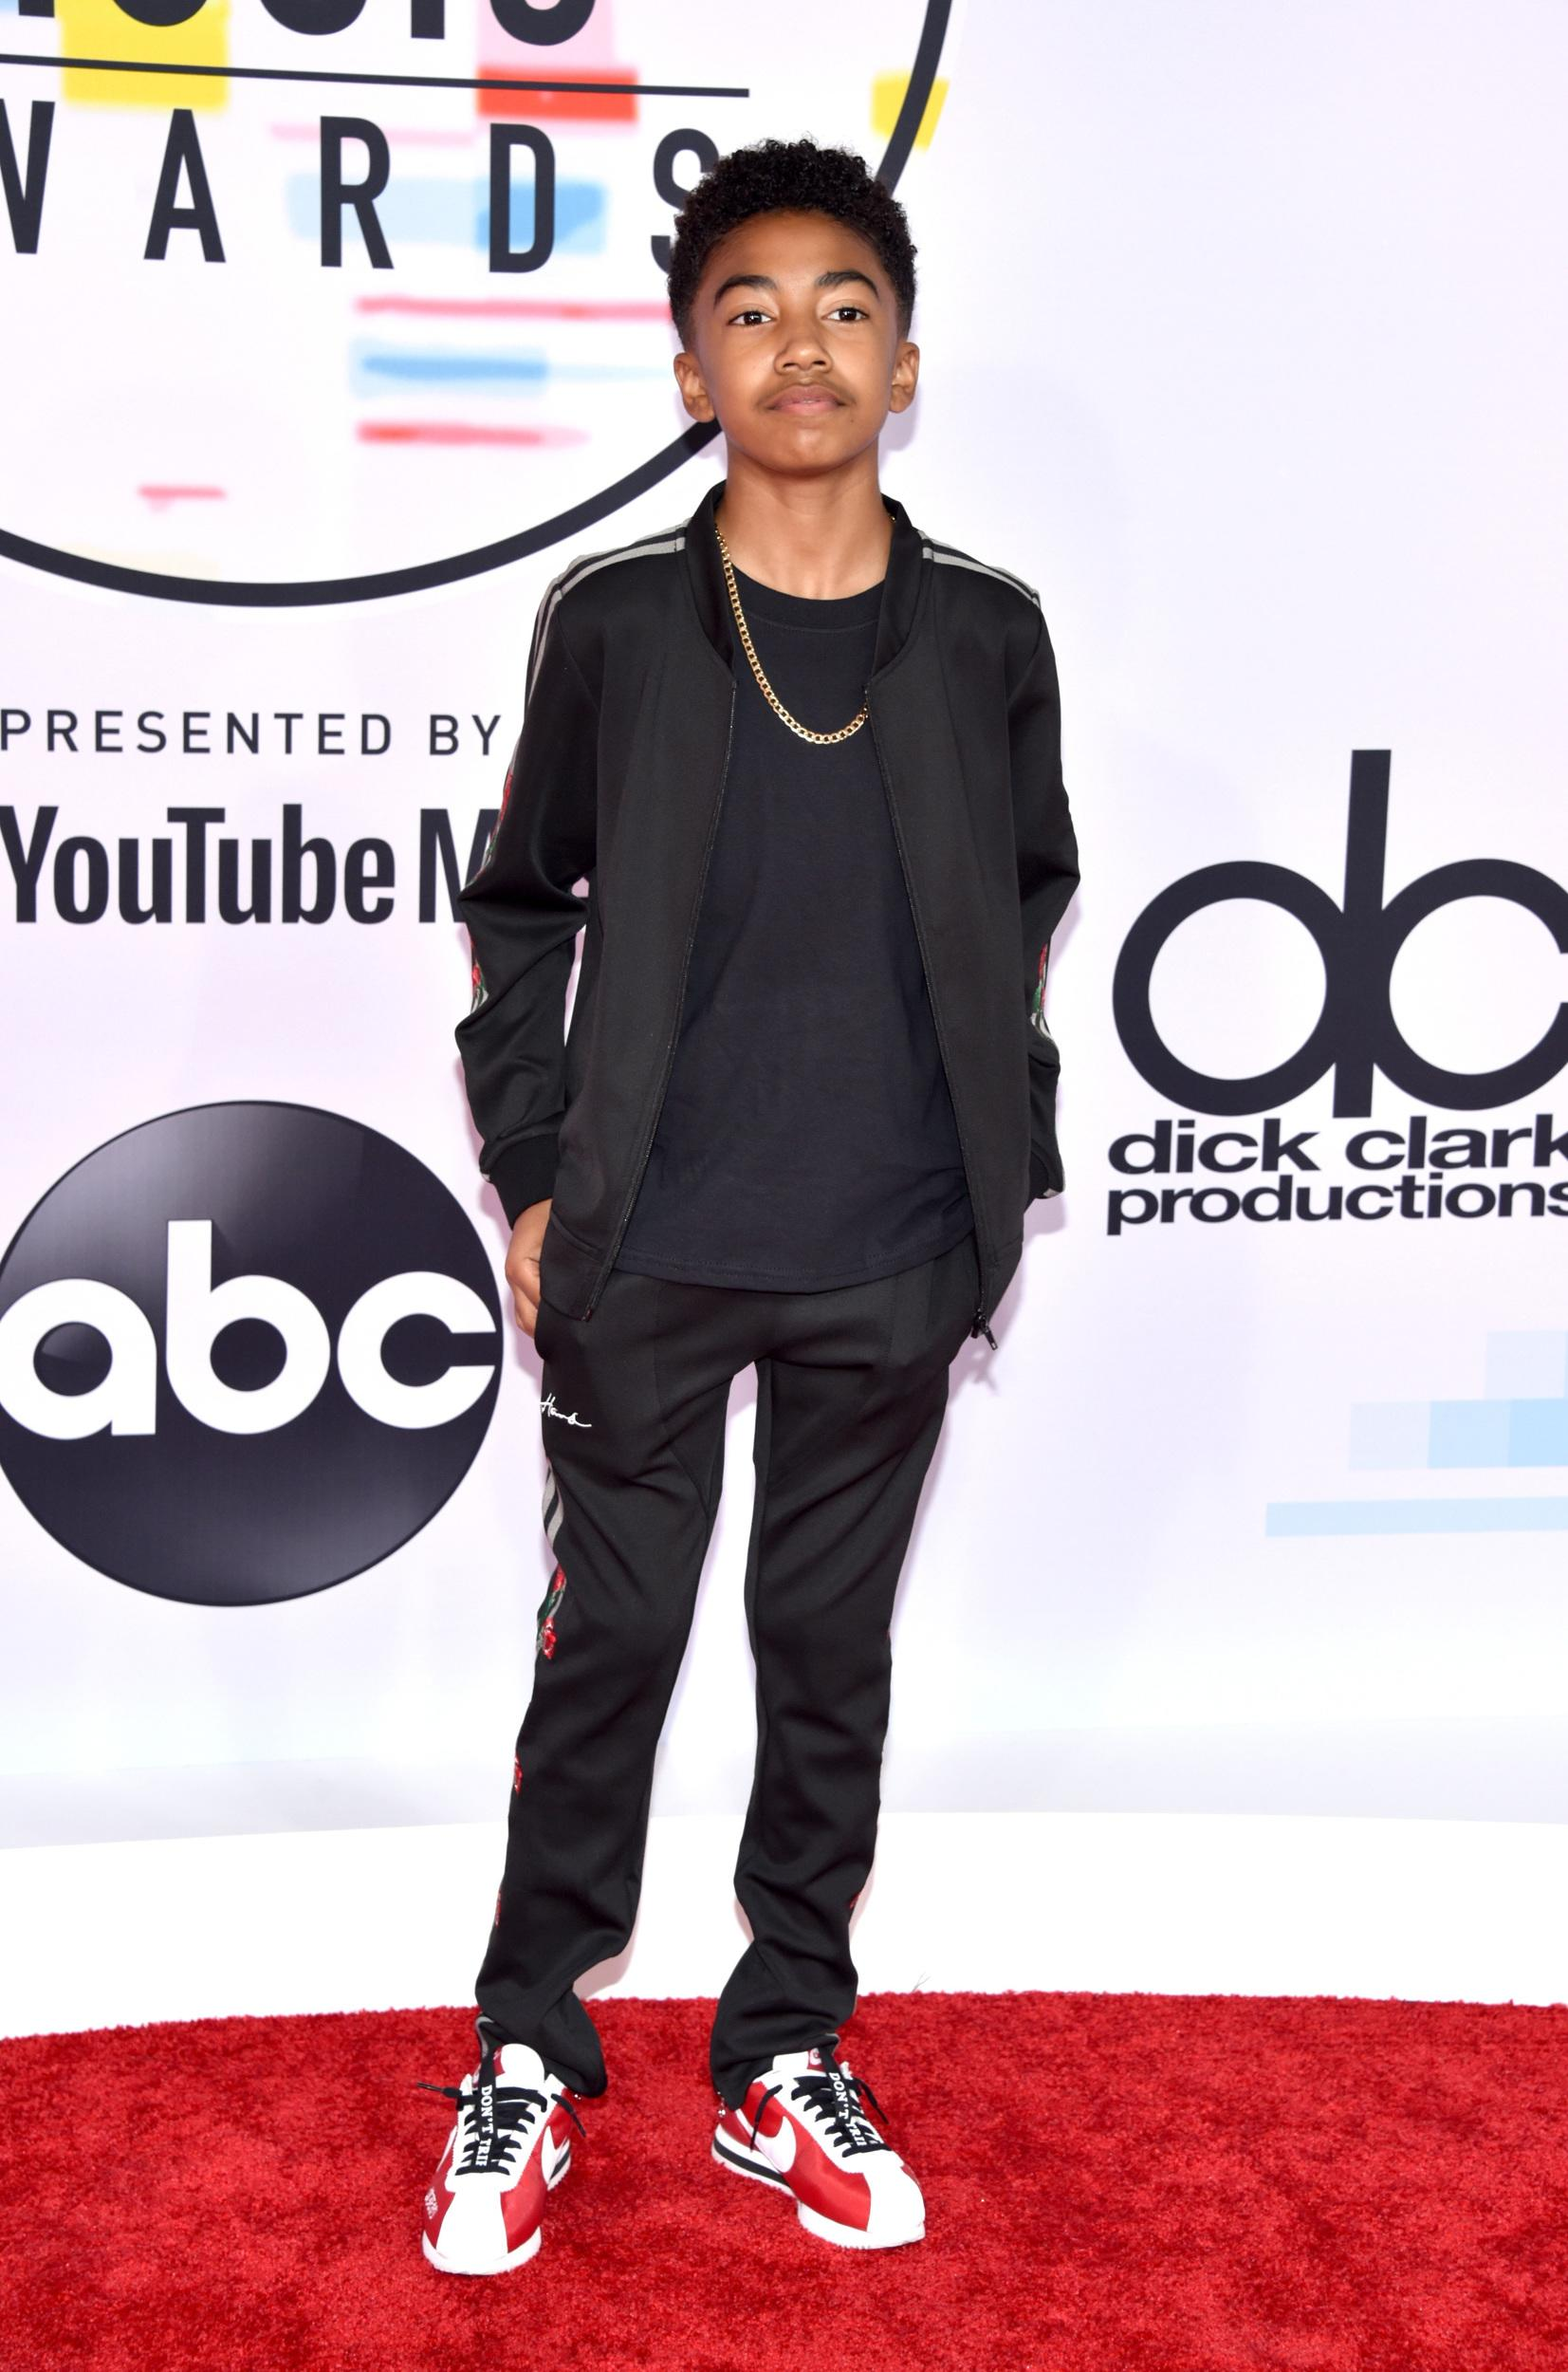 LOS ANGELES, CA - OCTOBER 09: Miles Brown attends the 2018 American Music Awards at Microsoft Theater on October 9, 2018 in Los Angeles, California. (Photo by John Shearer/Getty Images For dcp)